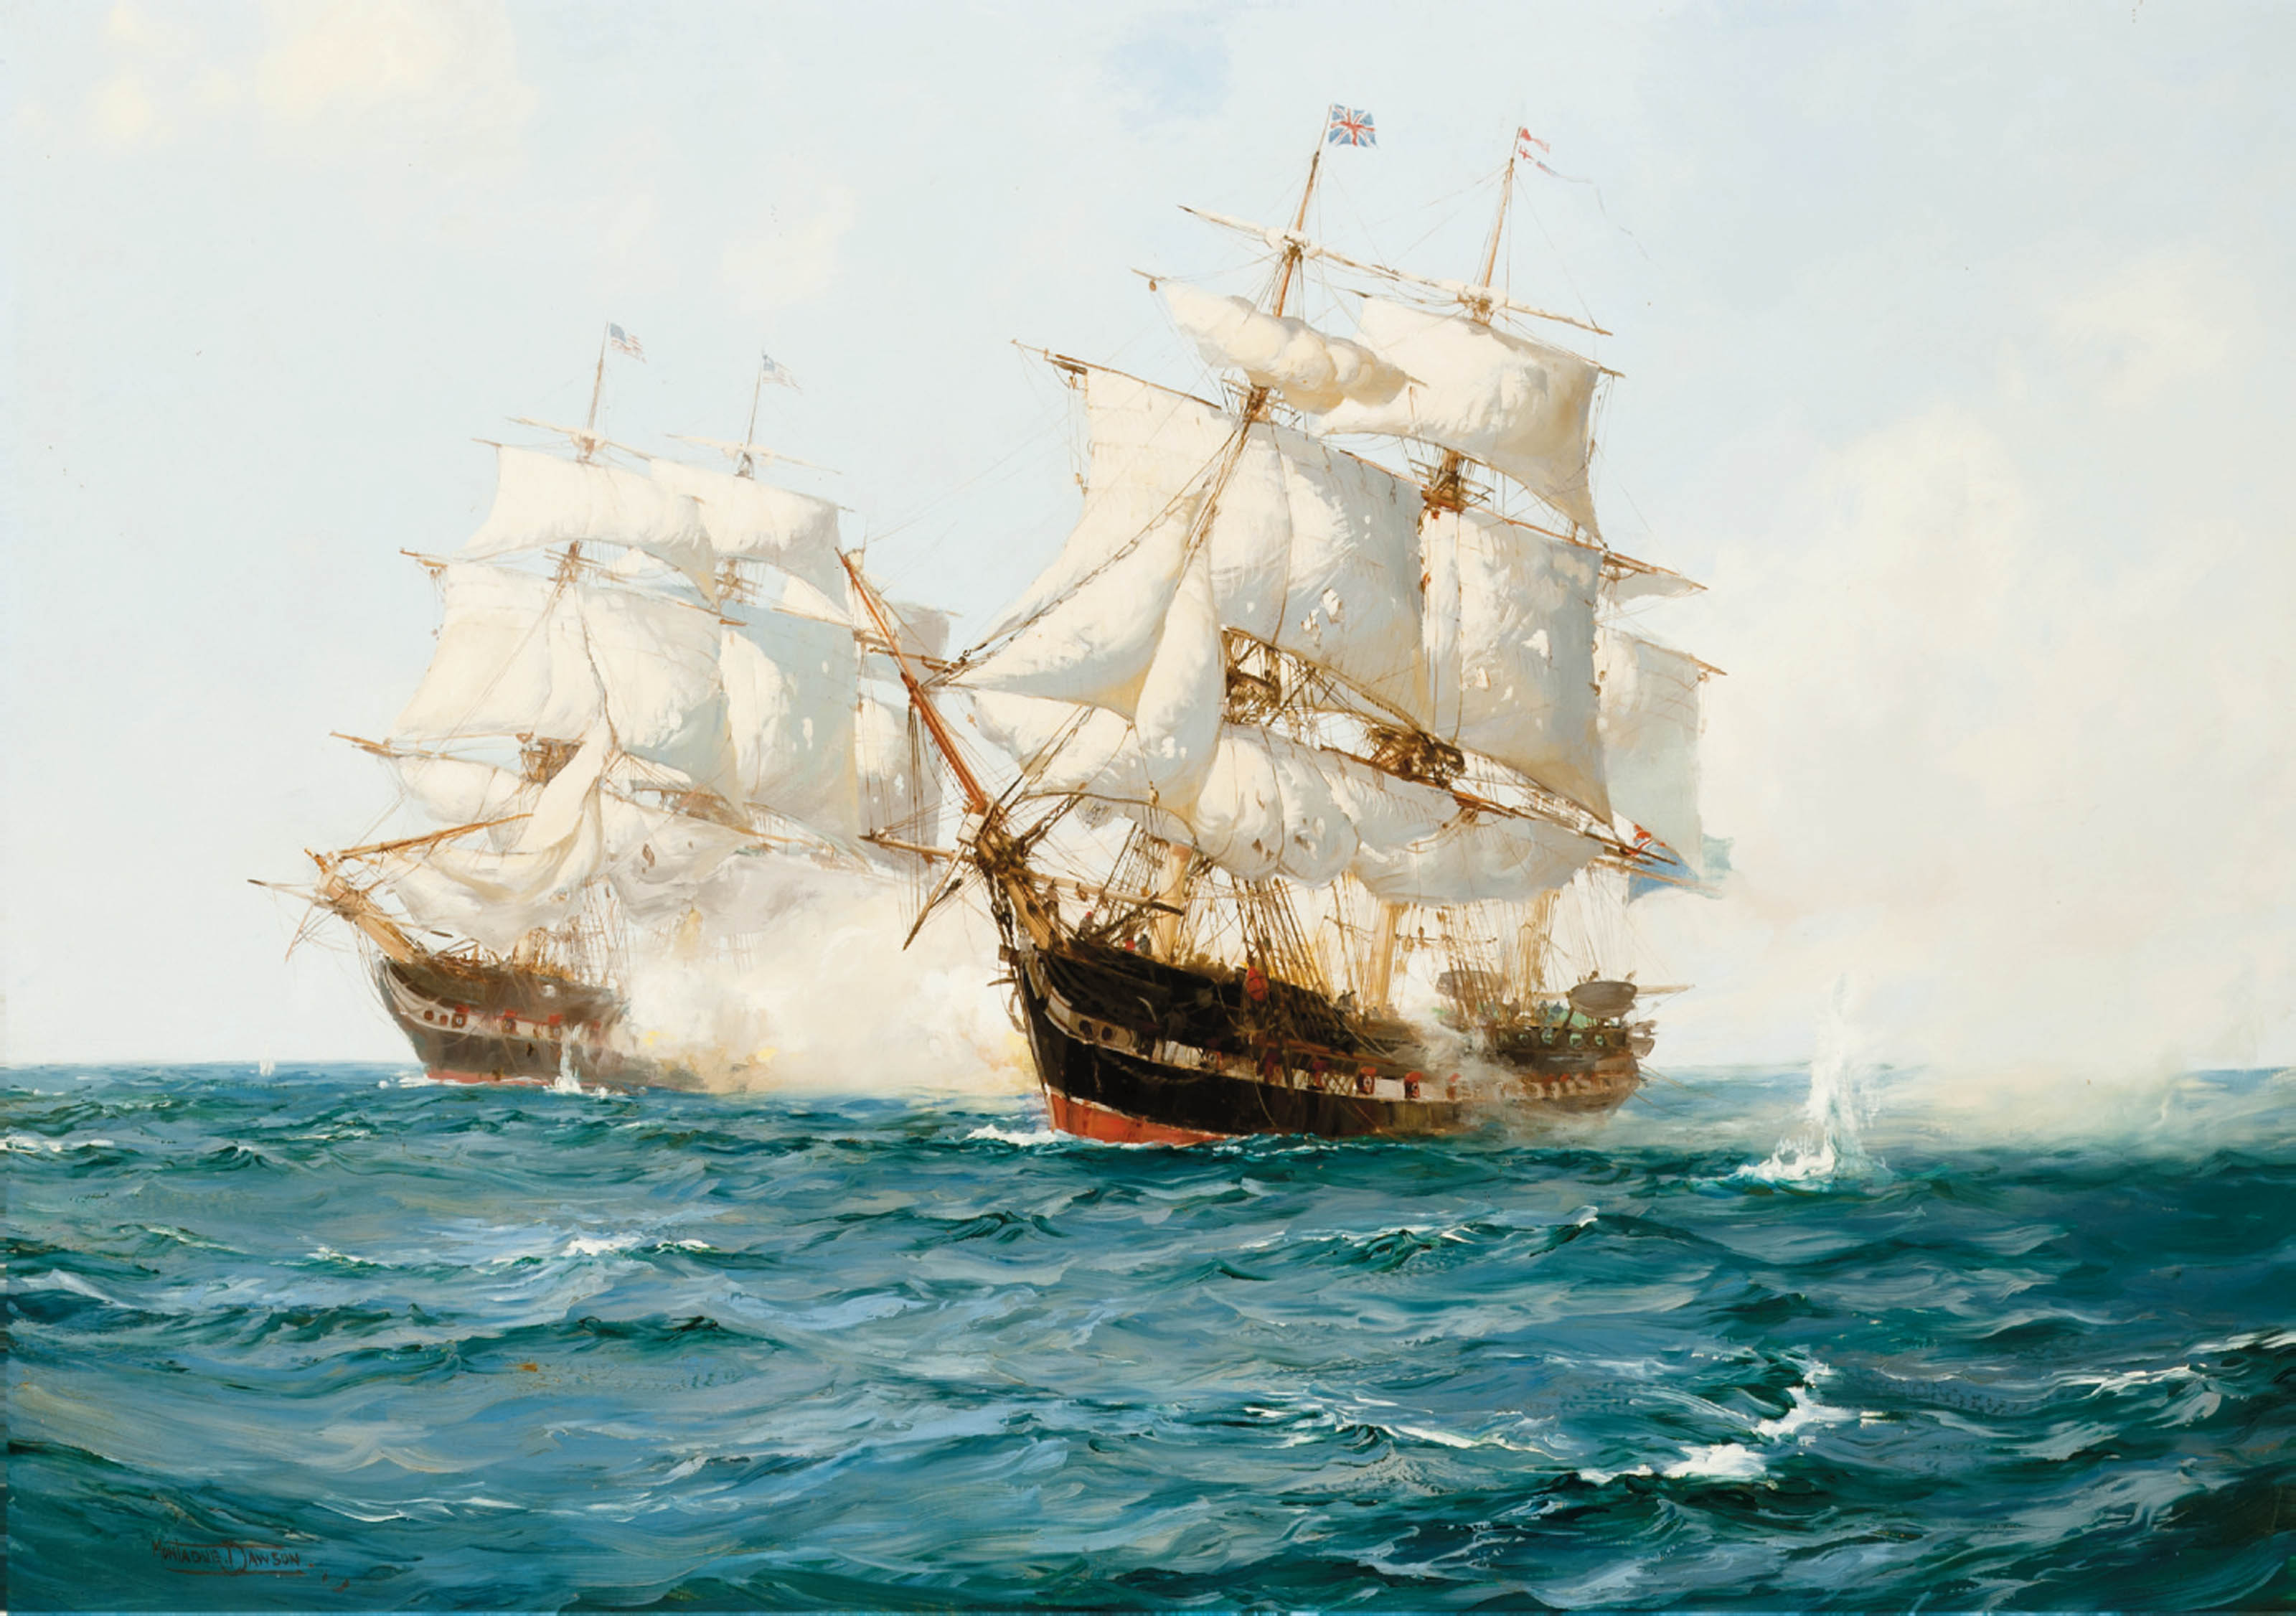 The opening salvoes of the action between H.M.S. Shannon and the U.S.S. Chesapeake, 1st June 1813